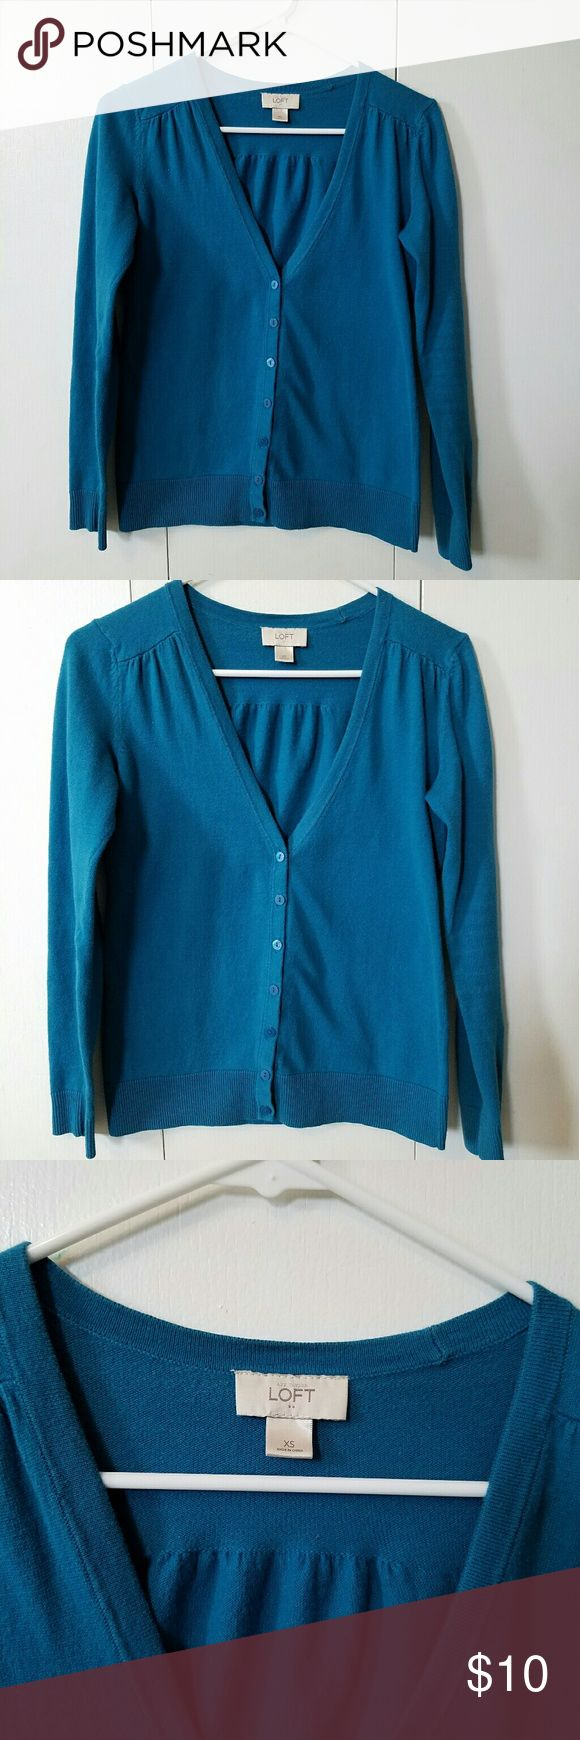 Turquoise cardigan Turquoise cardigan from Loft. Beautiful color! Great condition. LOFT Sweaters Cardigans